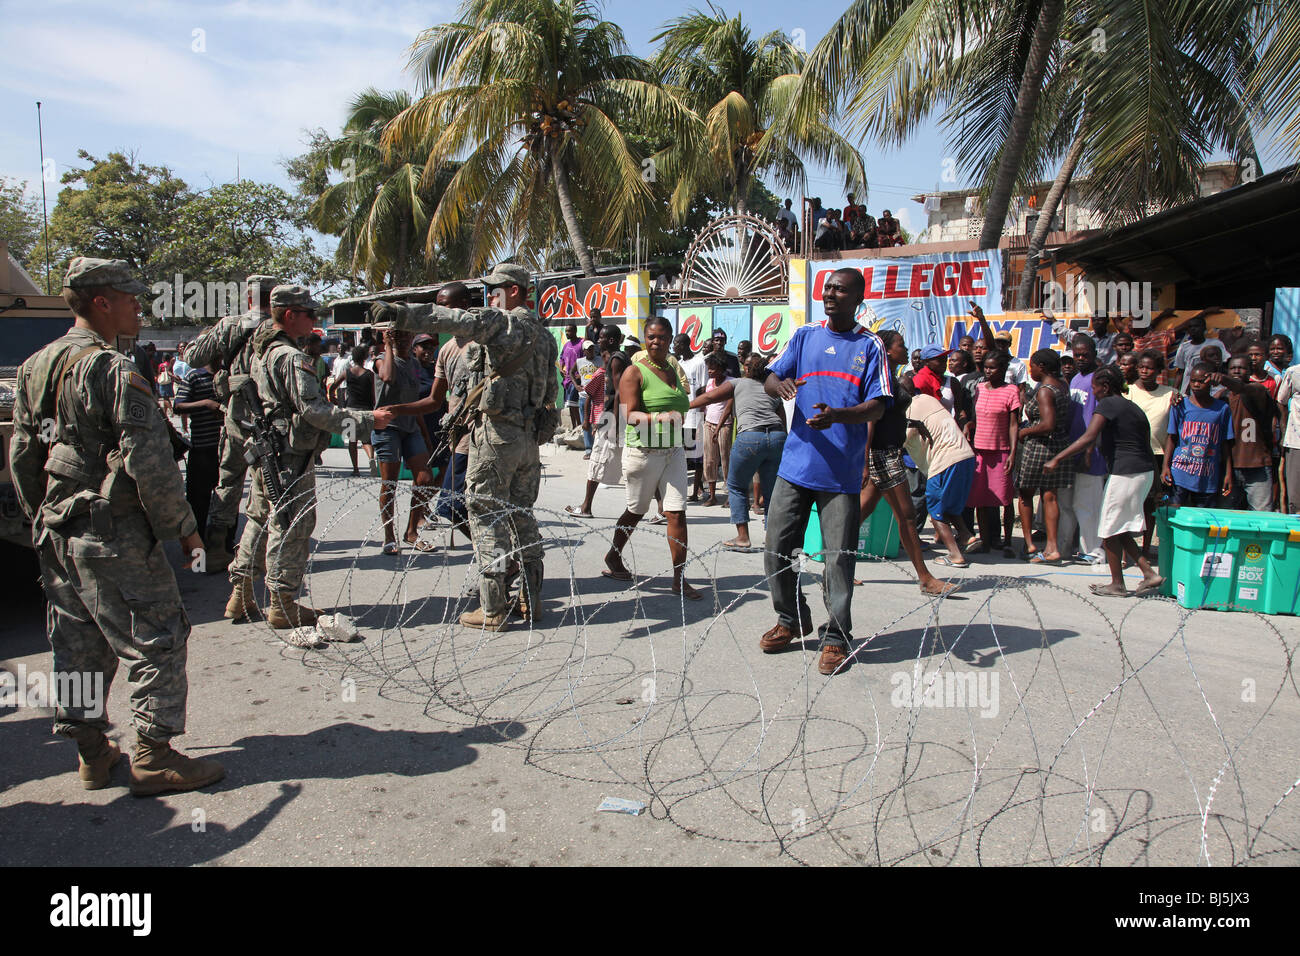 Slodiers of the 82nd Airborne, US Army distribute aid in Port au Prince, Haiti - Stock Image